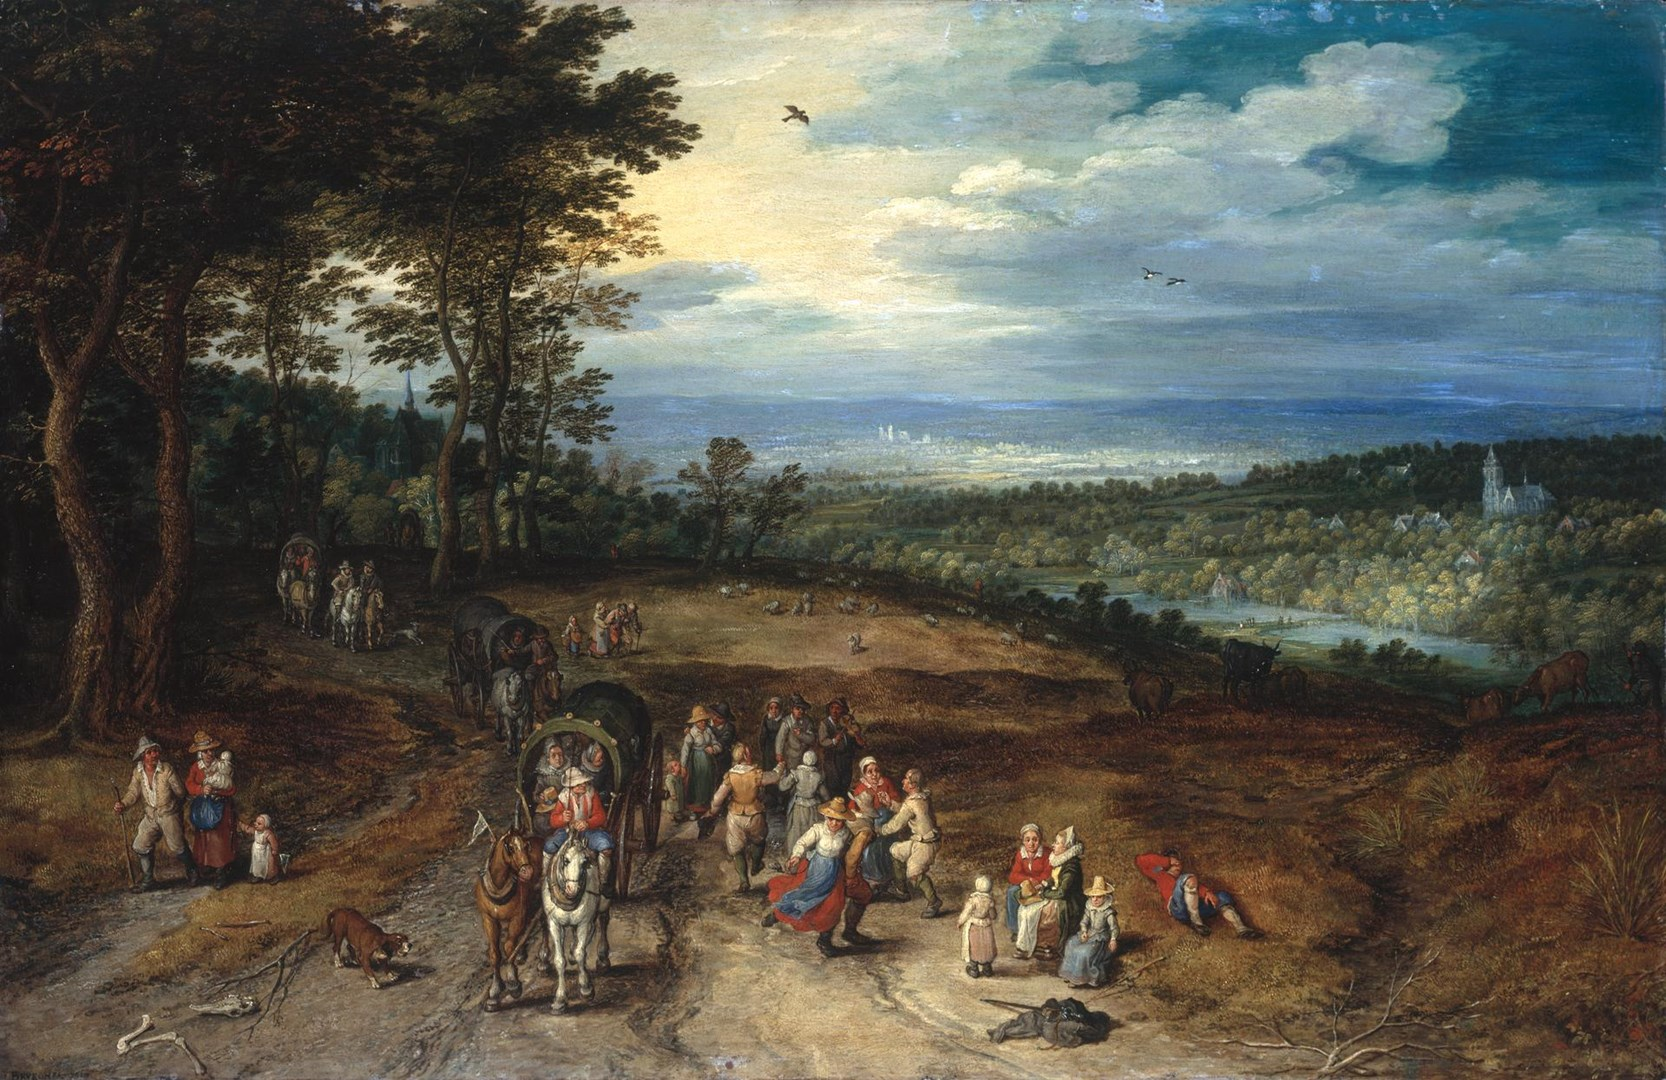 Landscape with Travellers and Peasants on a Track by Jan Brueghel the Elder